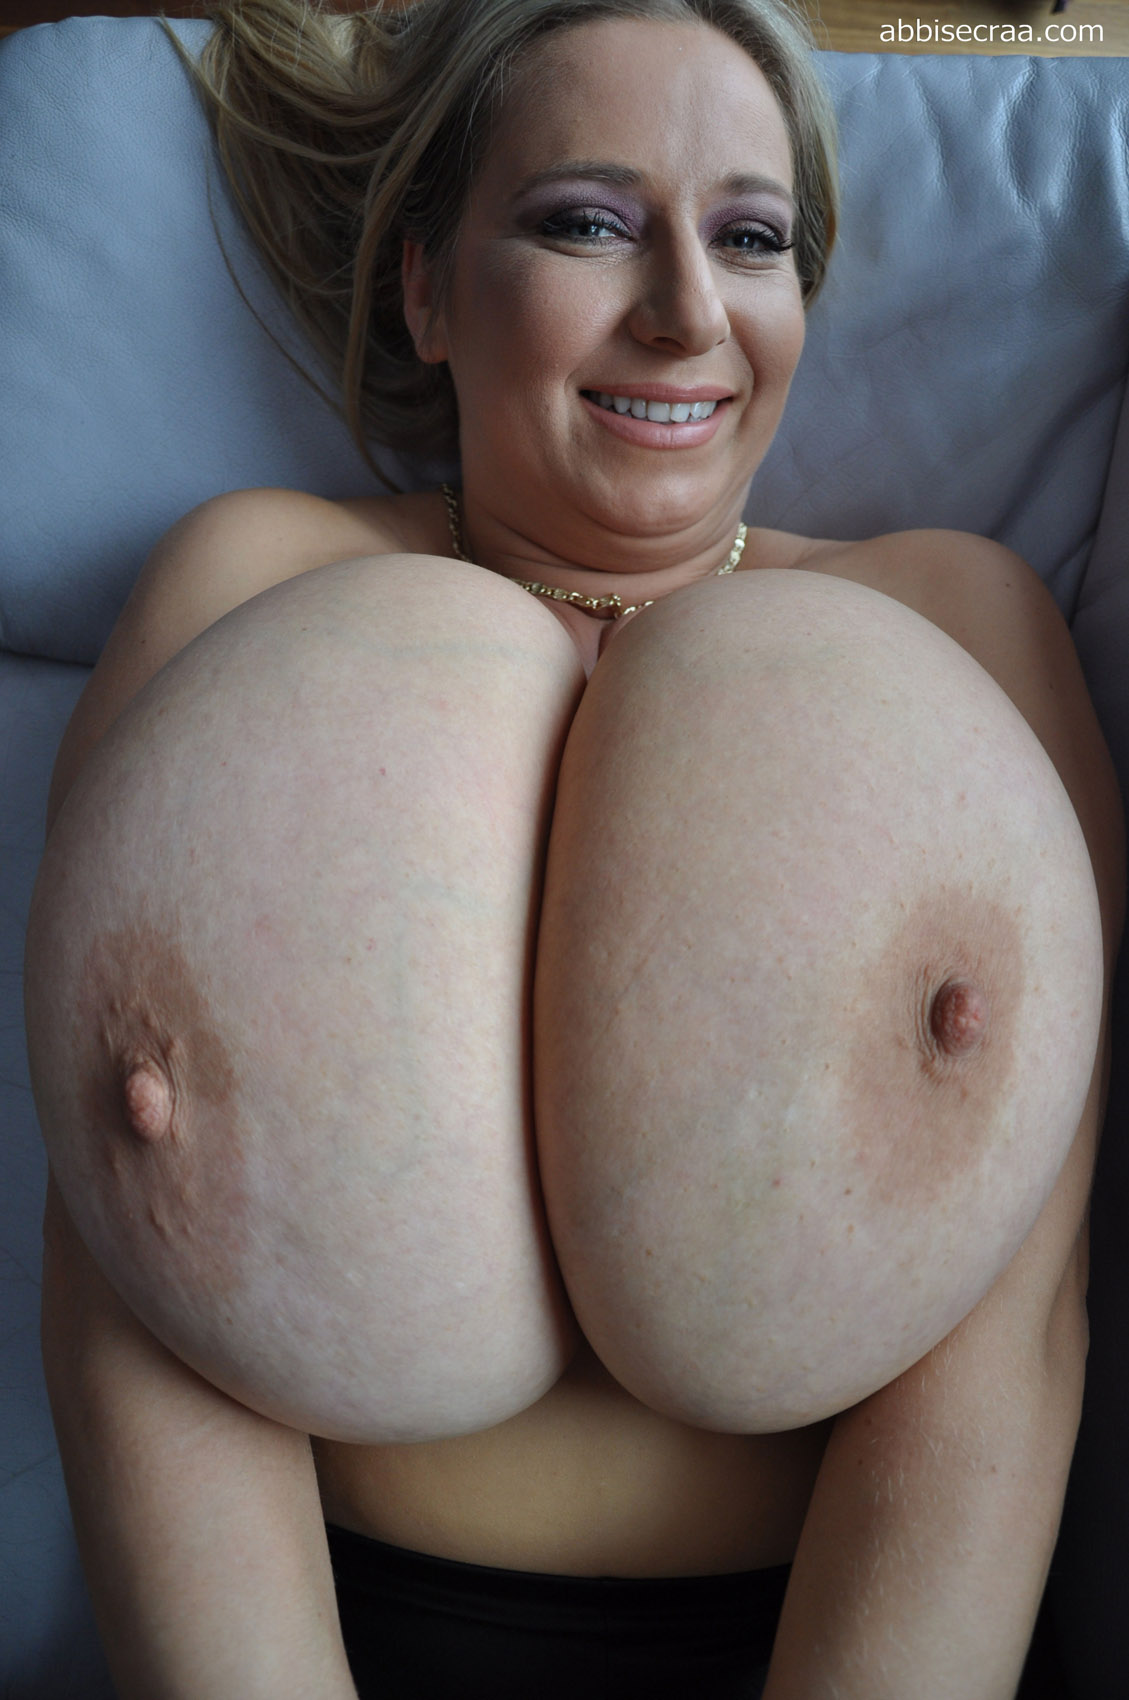 Big boobs abbi secraa cumshot think, you